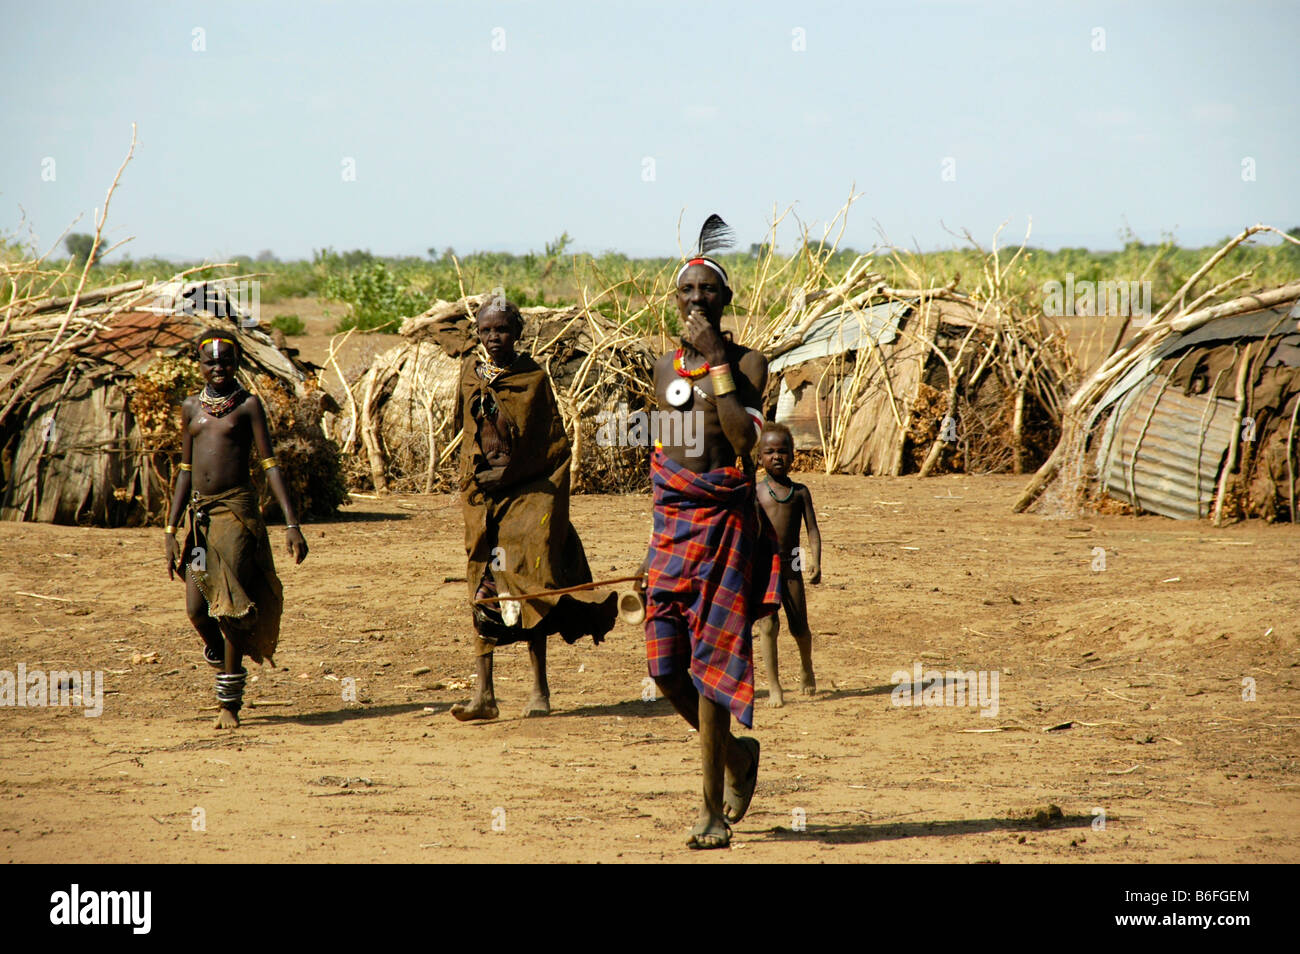 Chieftain with delegation, Omo River, Dashenesh people, Ethiopia, Africa - Stock Image